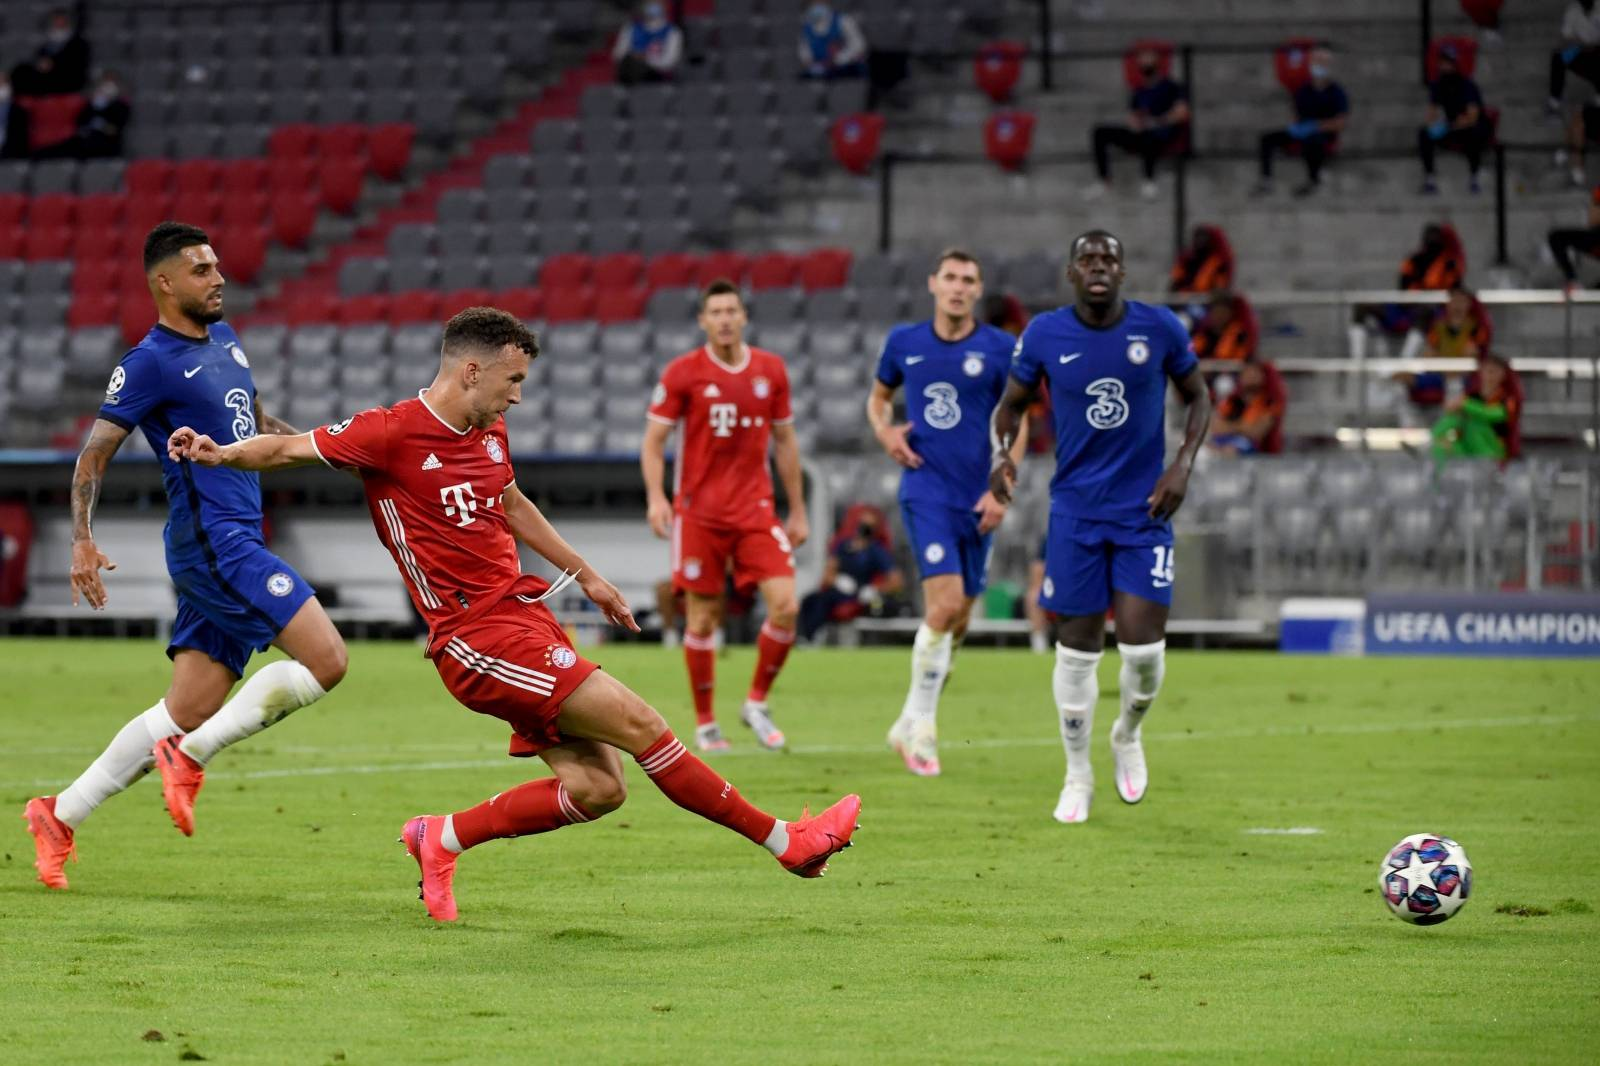 Bayern Munich v Chelsea - UEFA Champions League - Round of Sixteen - Second Leg - Allianz Arena